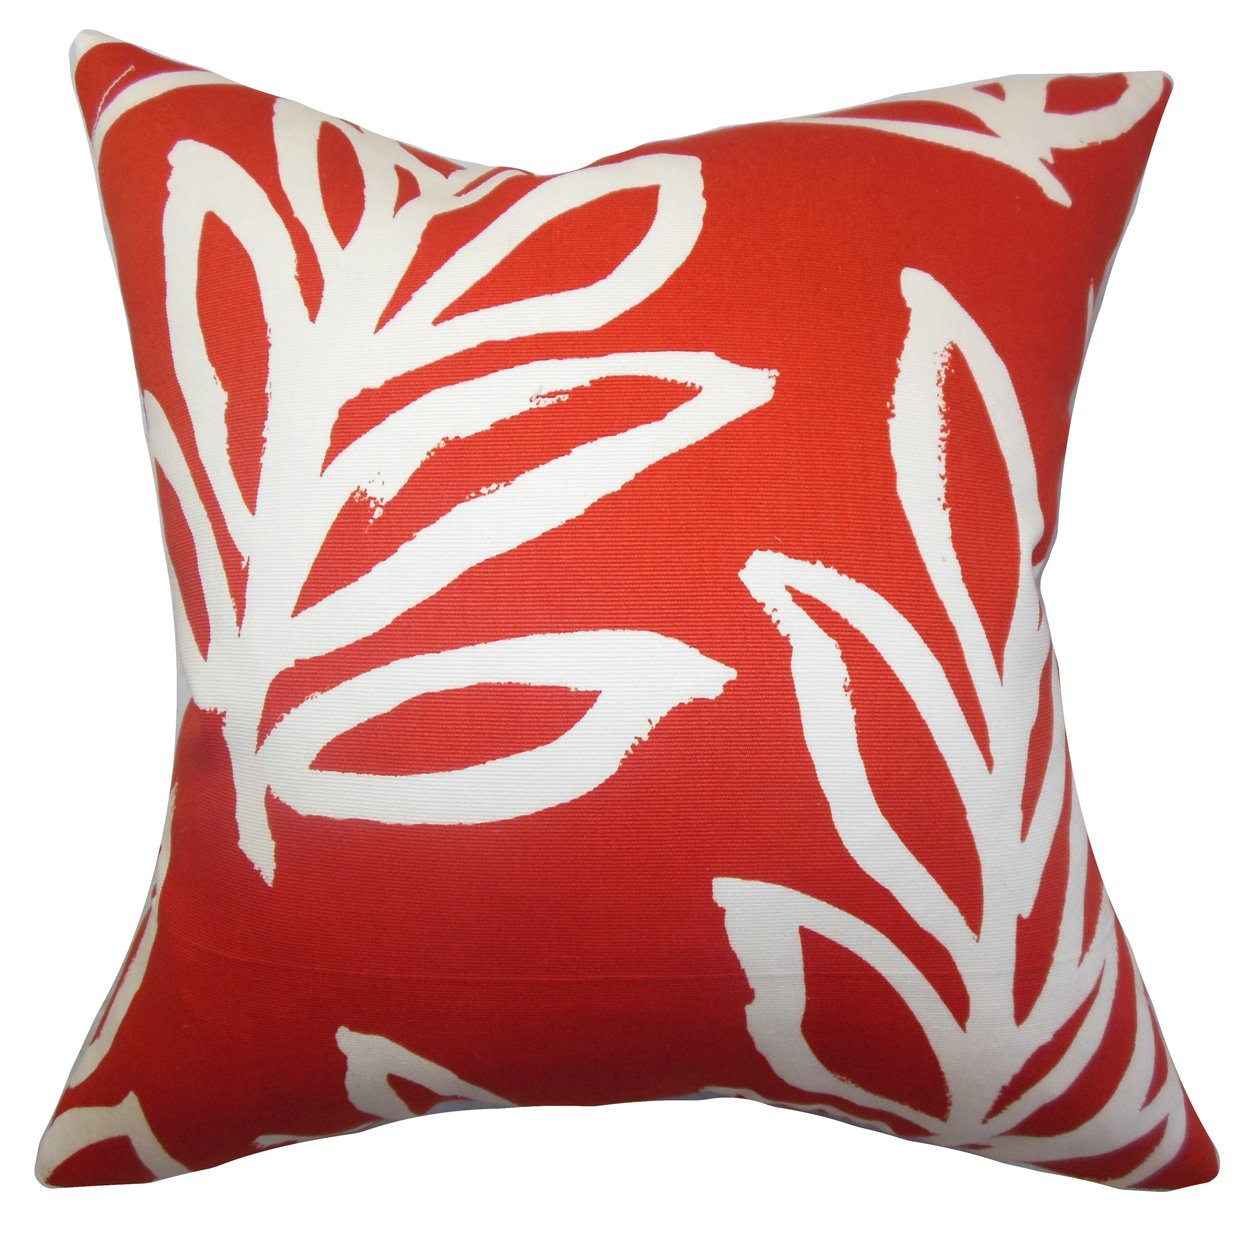 Red The Pillow Collection Razili Floral Pillow